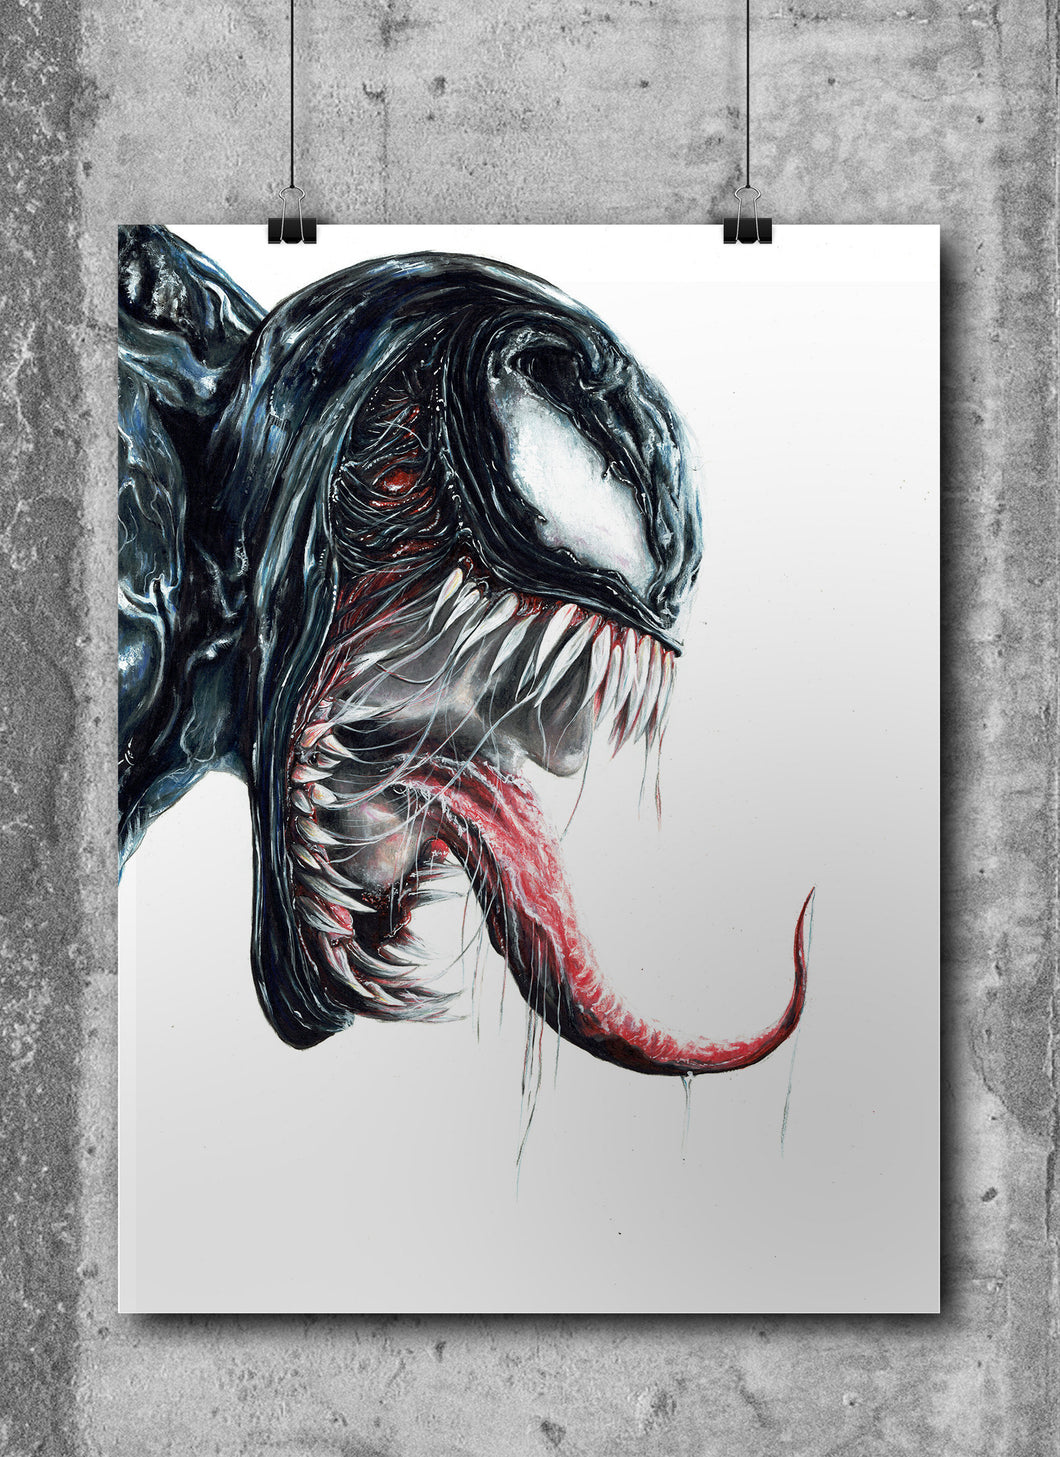 Venom/Limited Edition/Hand Drawing by Wil Shrike